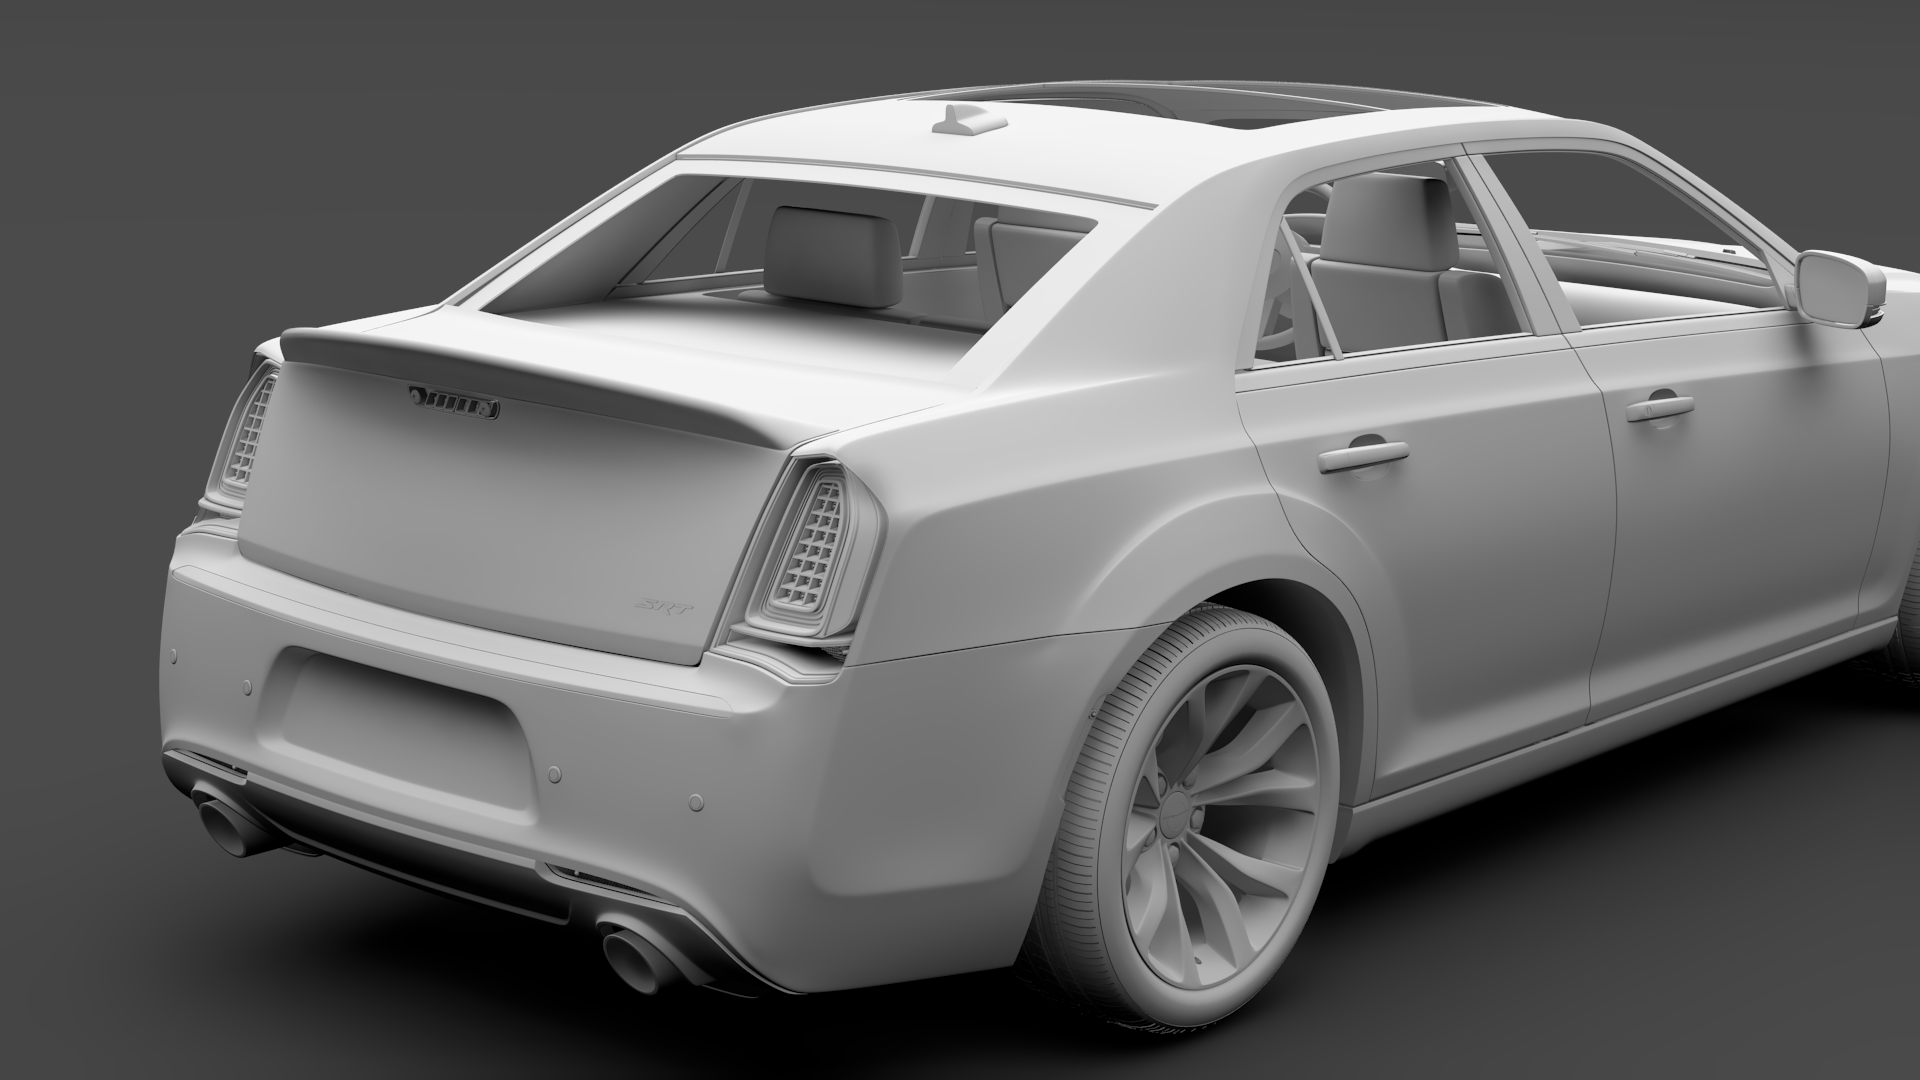 chrysler 300 srt lx2 2018 3d model 3ds max fbx c4d lwo ma mb hrc xsi obj 286112